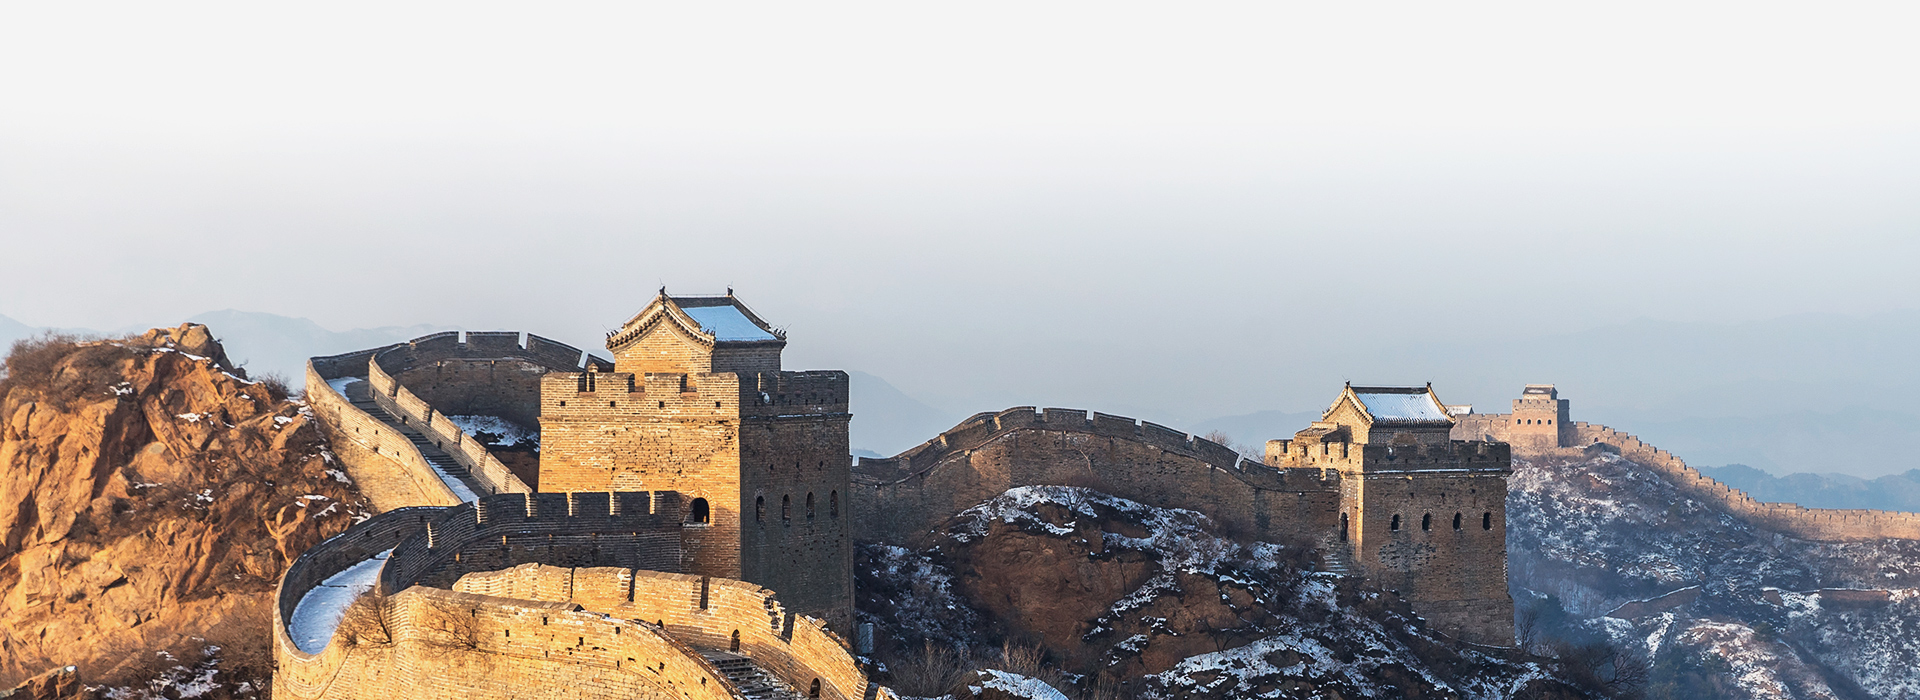 A portion of China's Great Wall cuts across a mountainous, snow-covered landscape.